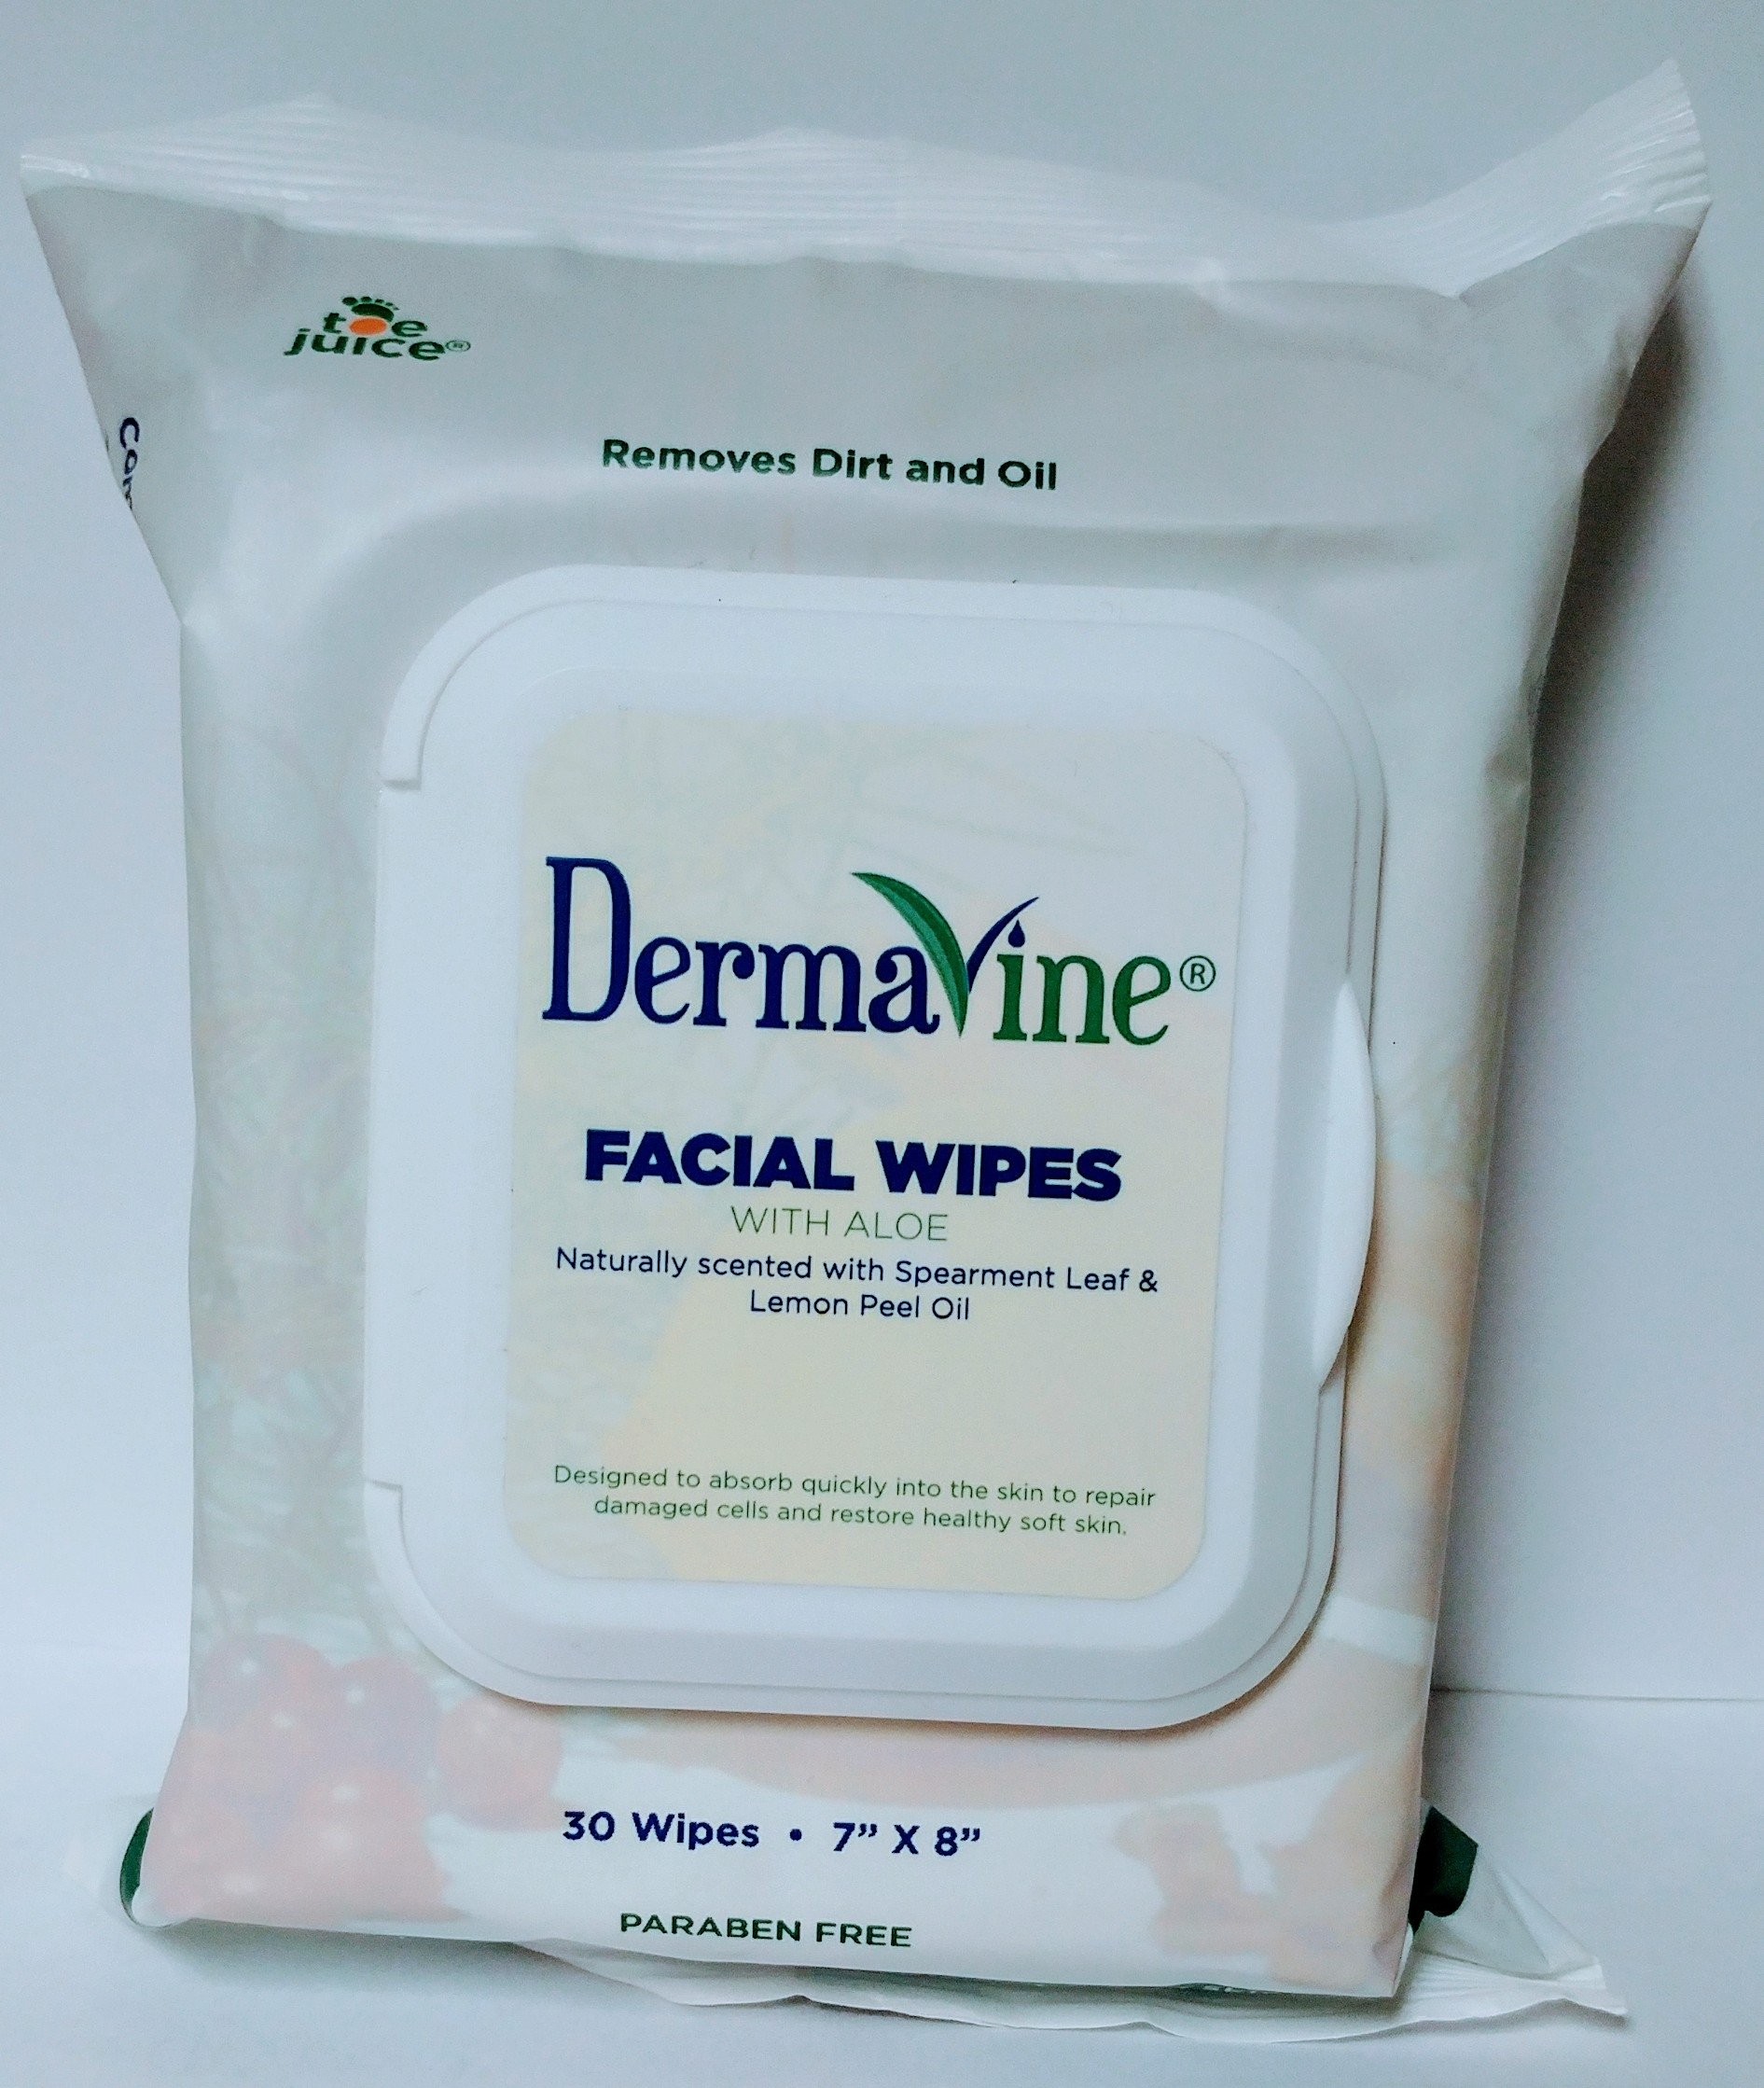 Buy 2 Get 2 FREE Offer!! Get 4 Packs of DermaVine Facial Cleansing Wipes (120 wipes) -Exfoliating Treatment for Acne, Dry Skin, Flaky Skin, Itchy Skin, Oily Skin, Sunburn Relief, Eczema, Psoriasis, and More